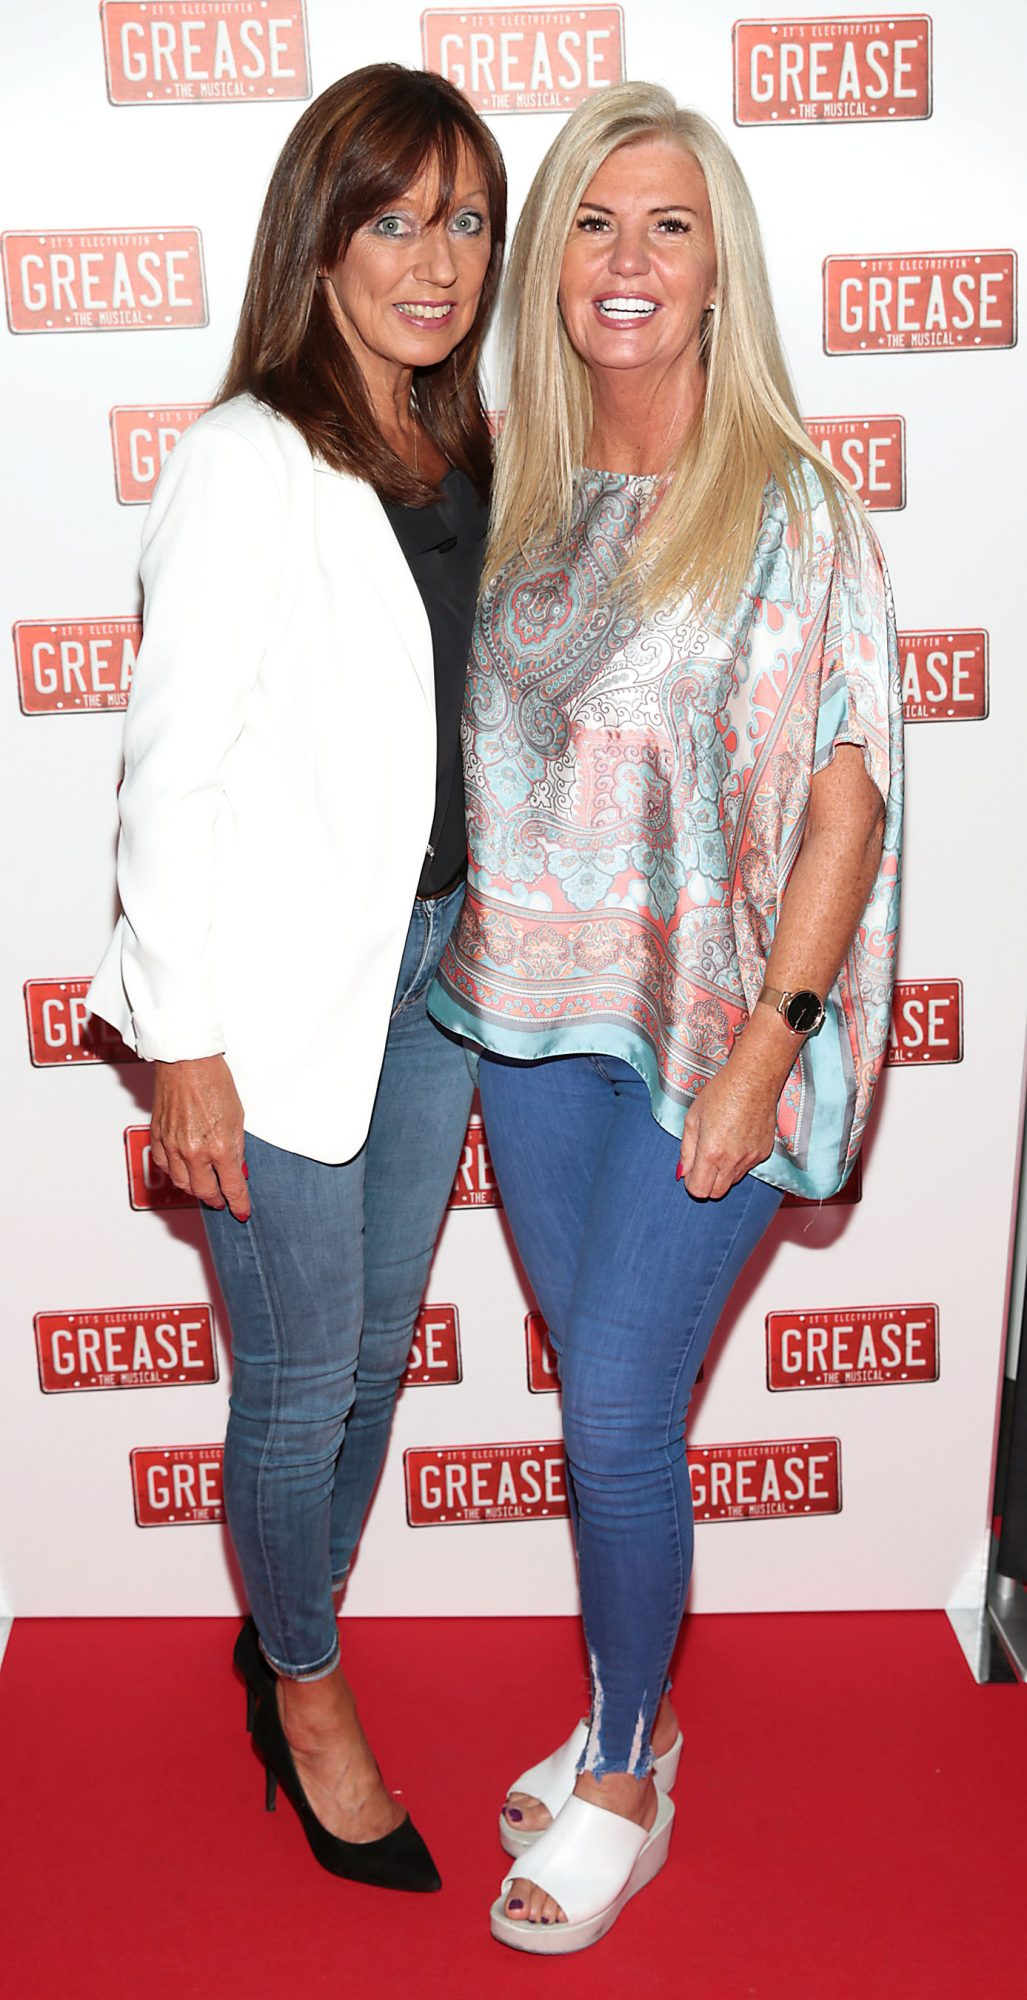 Maeve Carberry and Ann Whelan pictured at the opening night of the musical Grease at the Bord Gais Energy Theatre, Dublin. Pic: Brian McEvoy